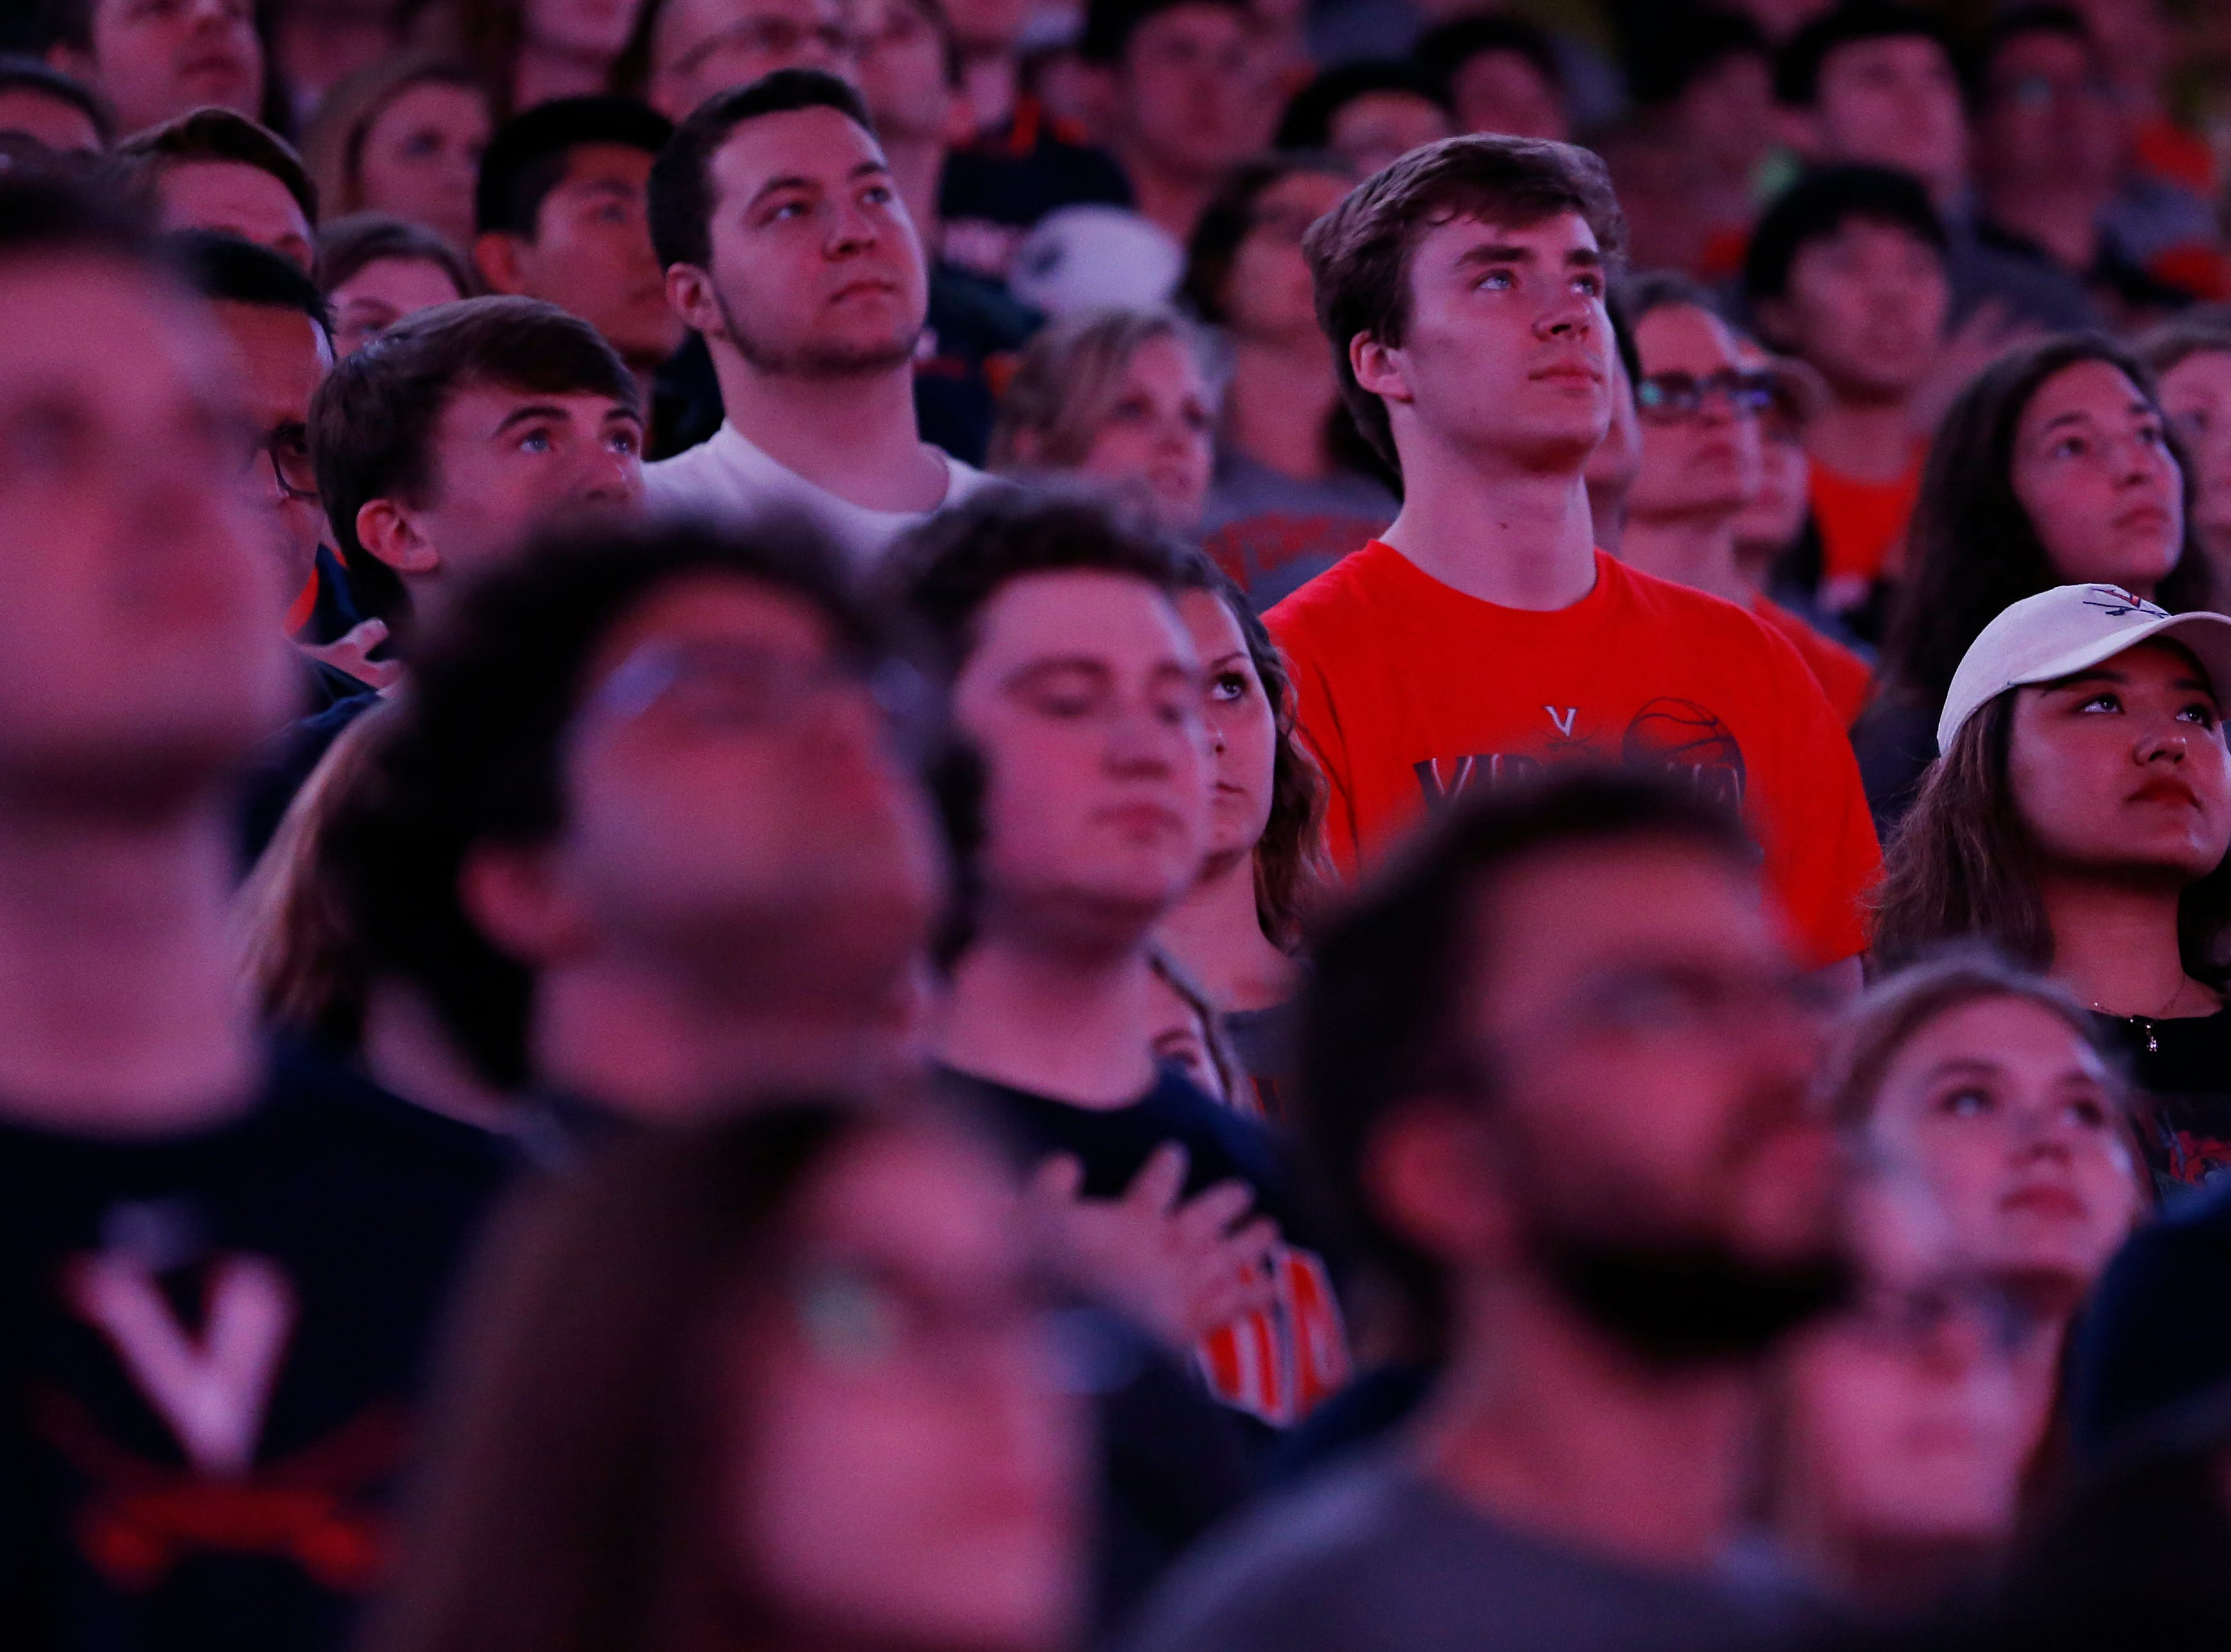 Apr 8, 2019; Charlottesville, VA, USA; Fans look on during a viewing party at John Paul Jones Arena for the the championship game of the 2019 men's Final Four between the Texas Tech Red Raiders and the Virginia Cavaliers. Mandatory Credit: Geoff Burke-USA TODAY Sports